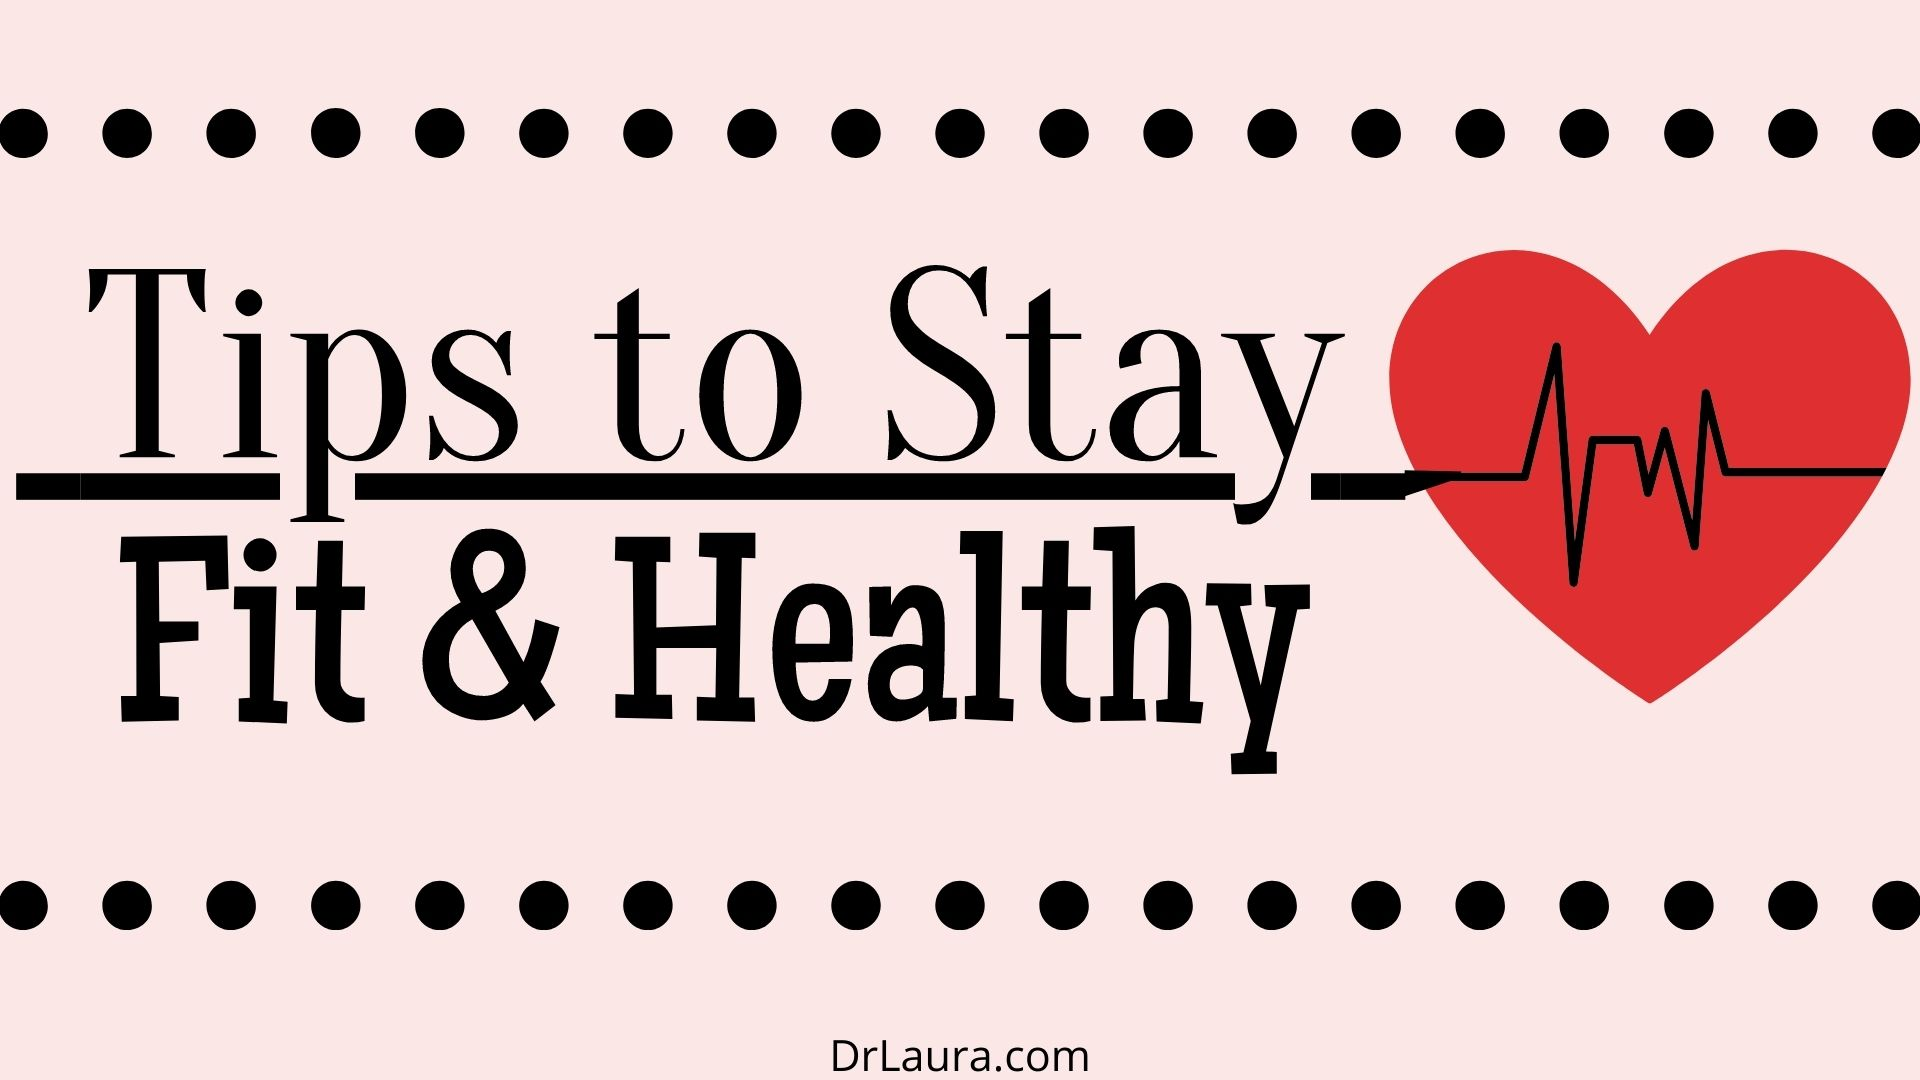 Blog: 7 Tips to Stay Fit and Healthy